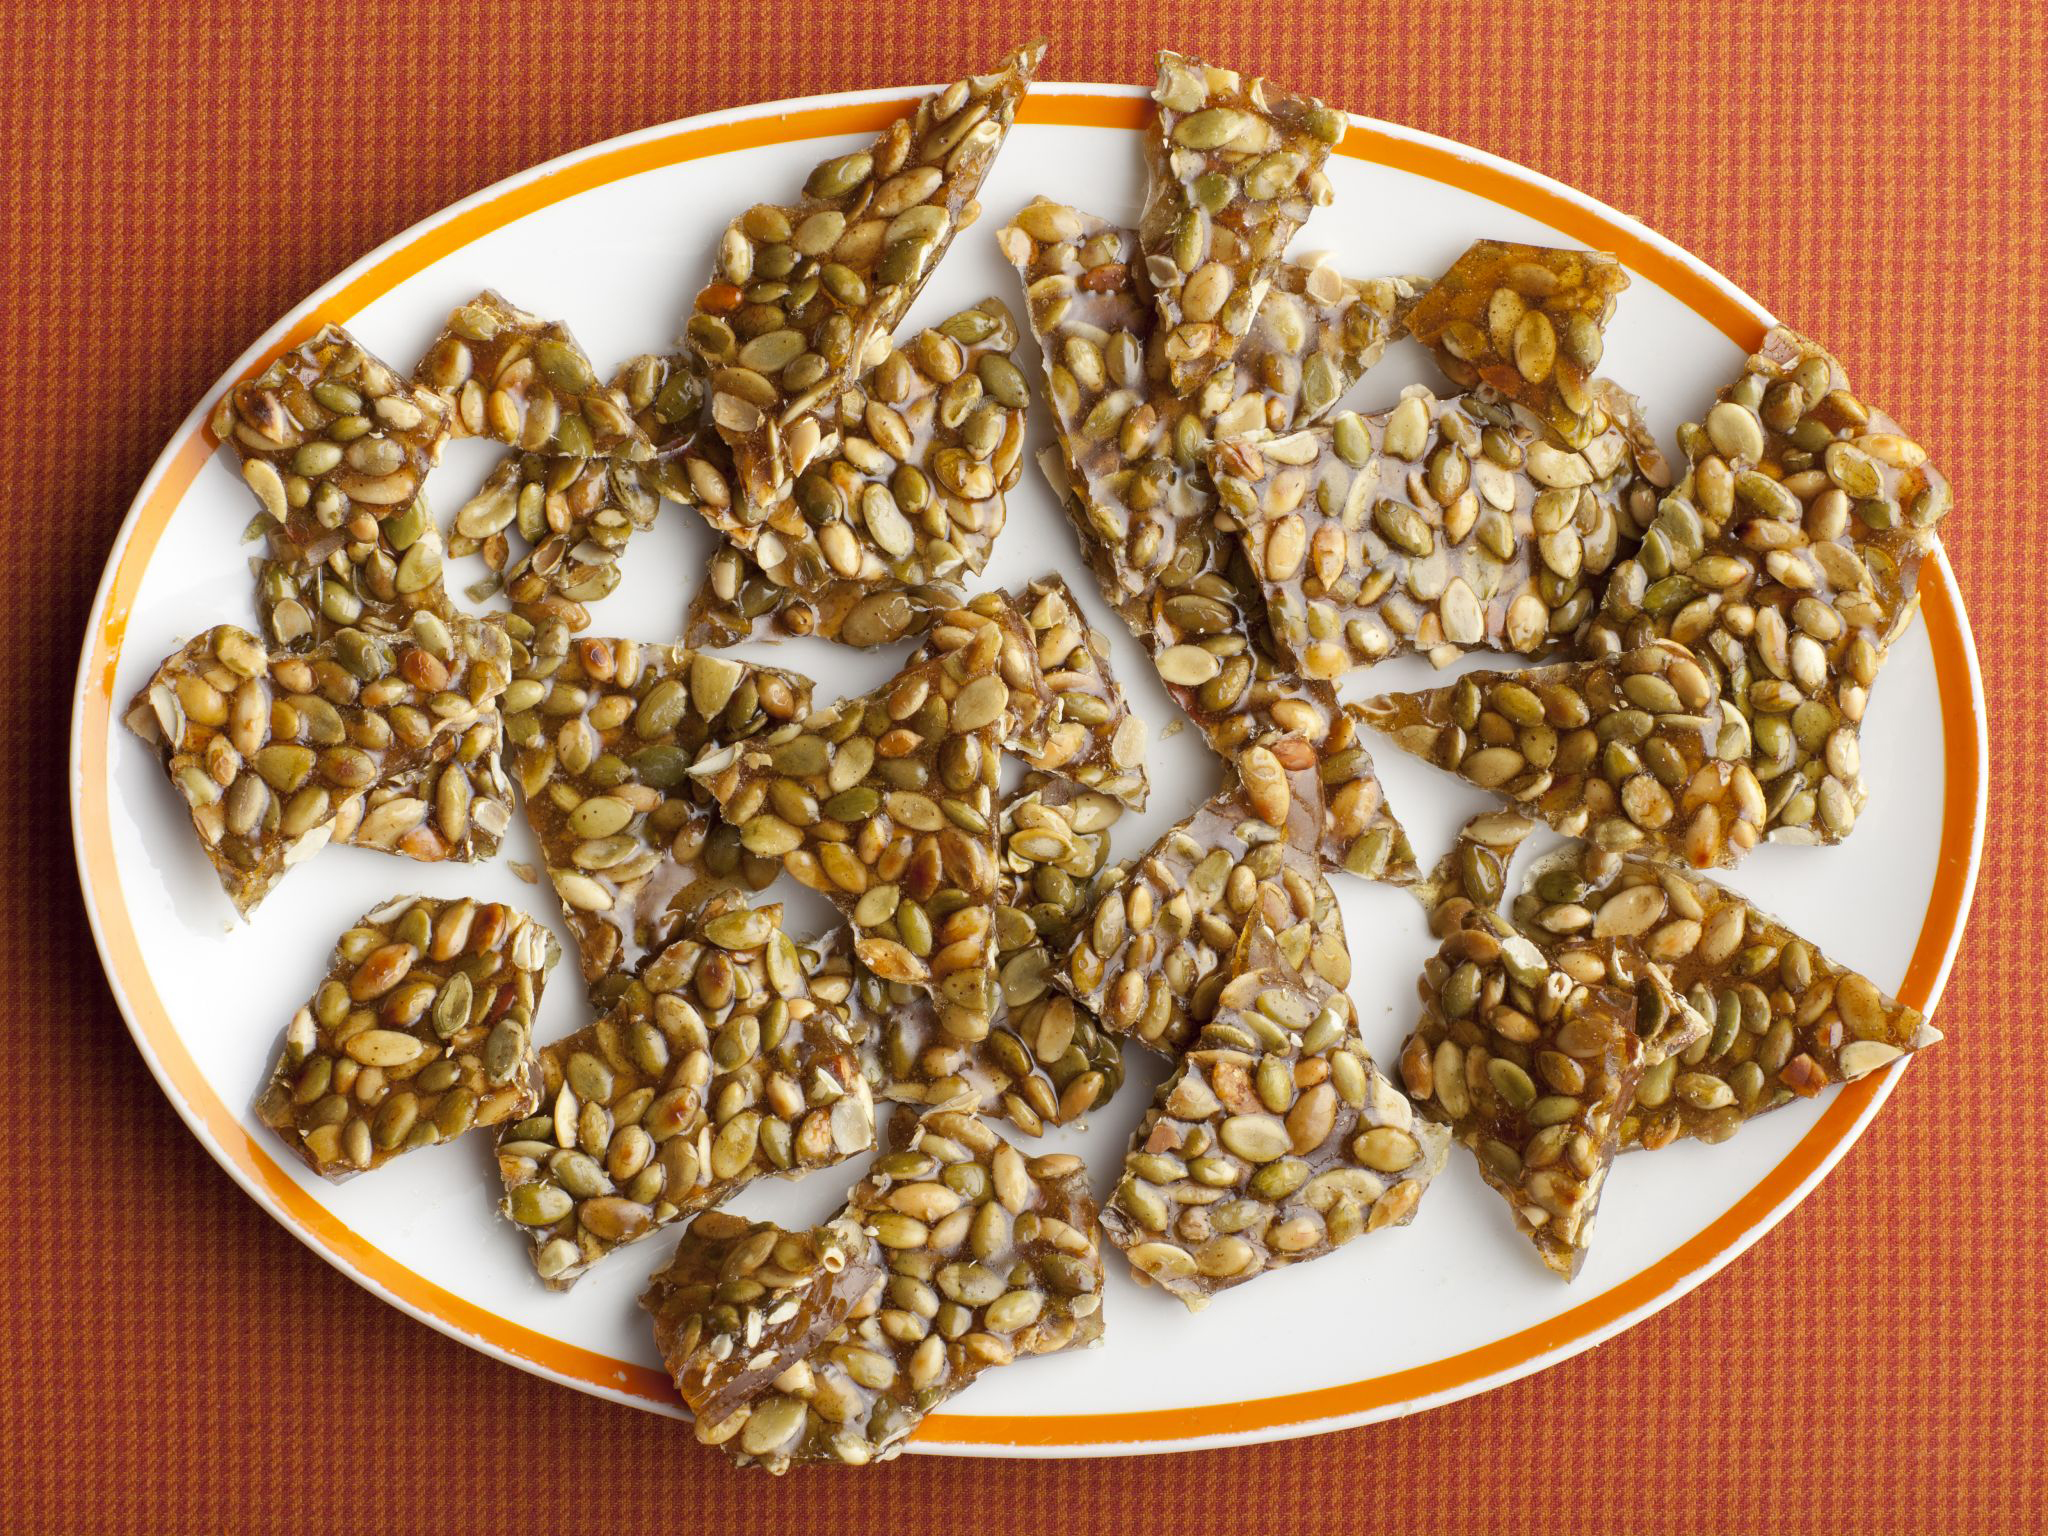 Pumpkin-seed-brittle